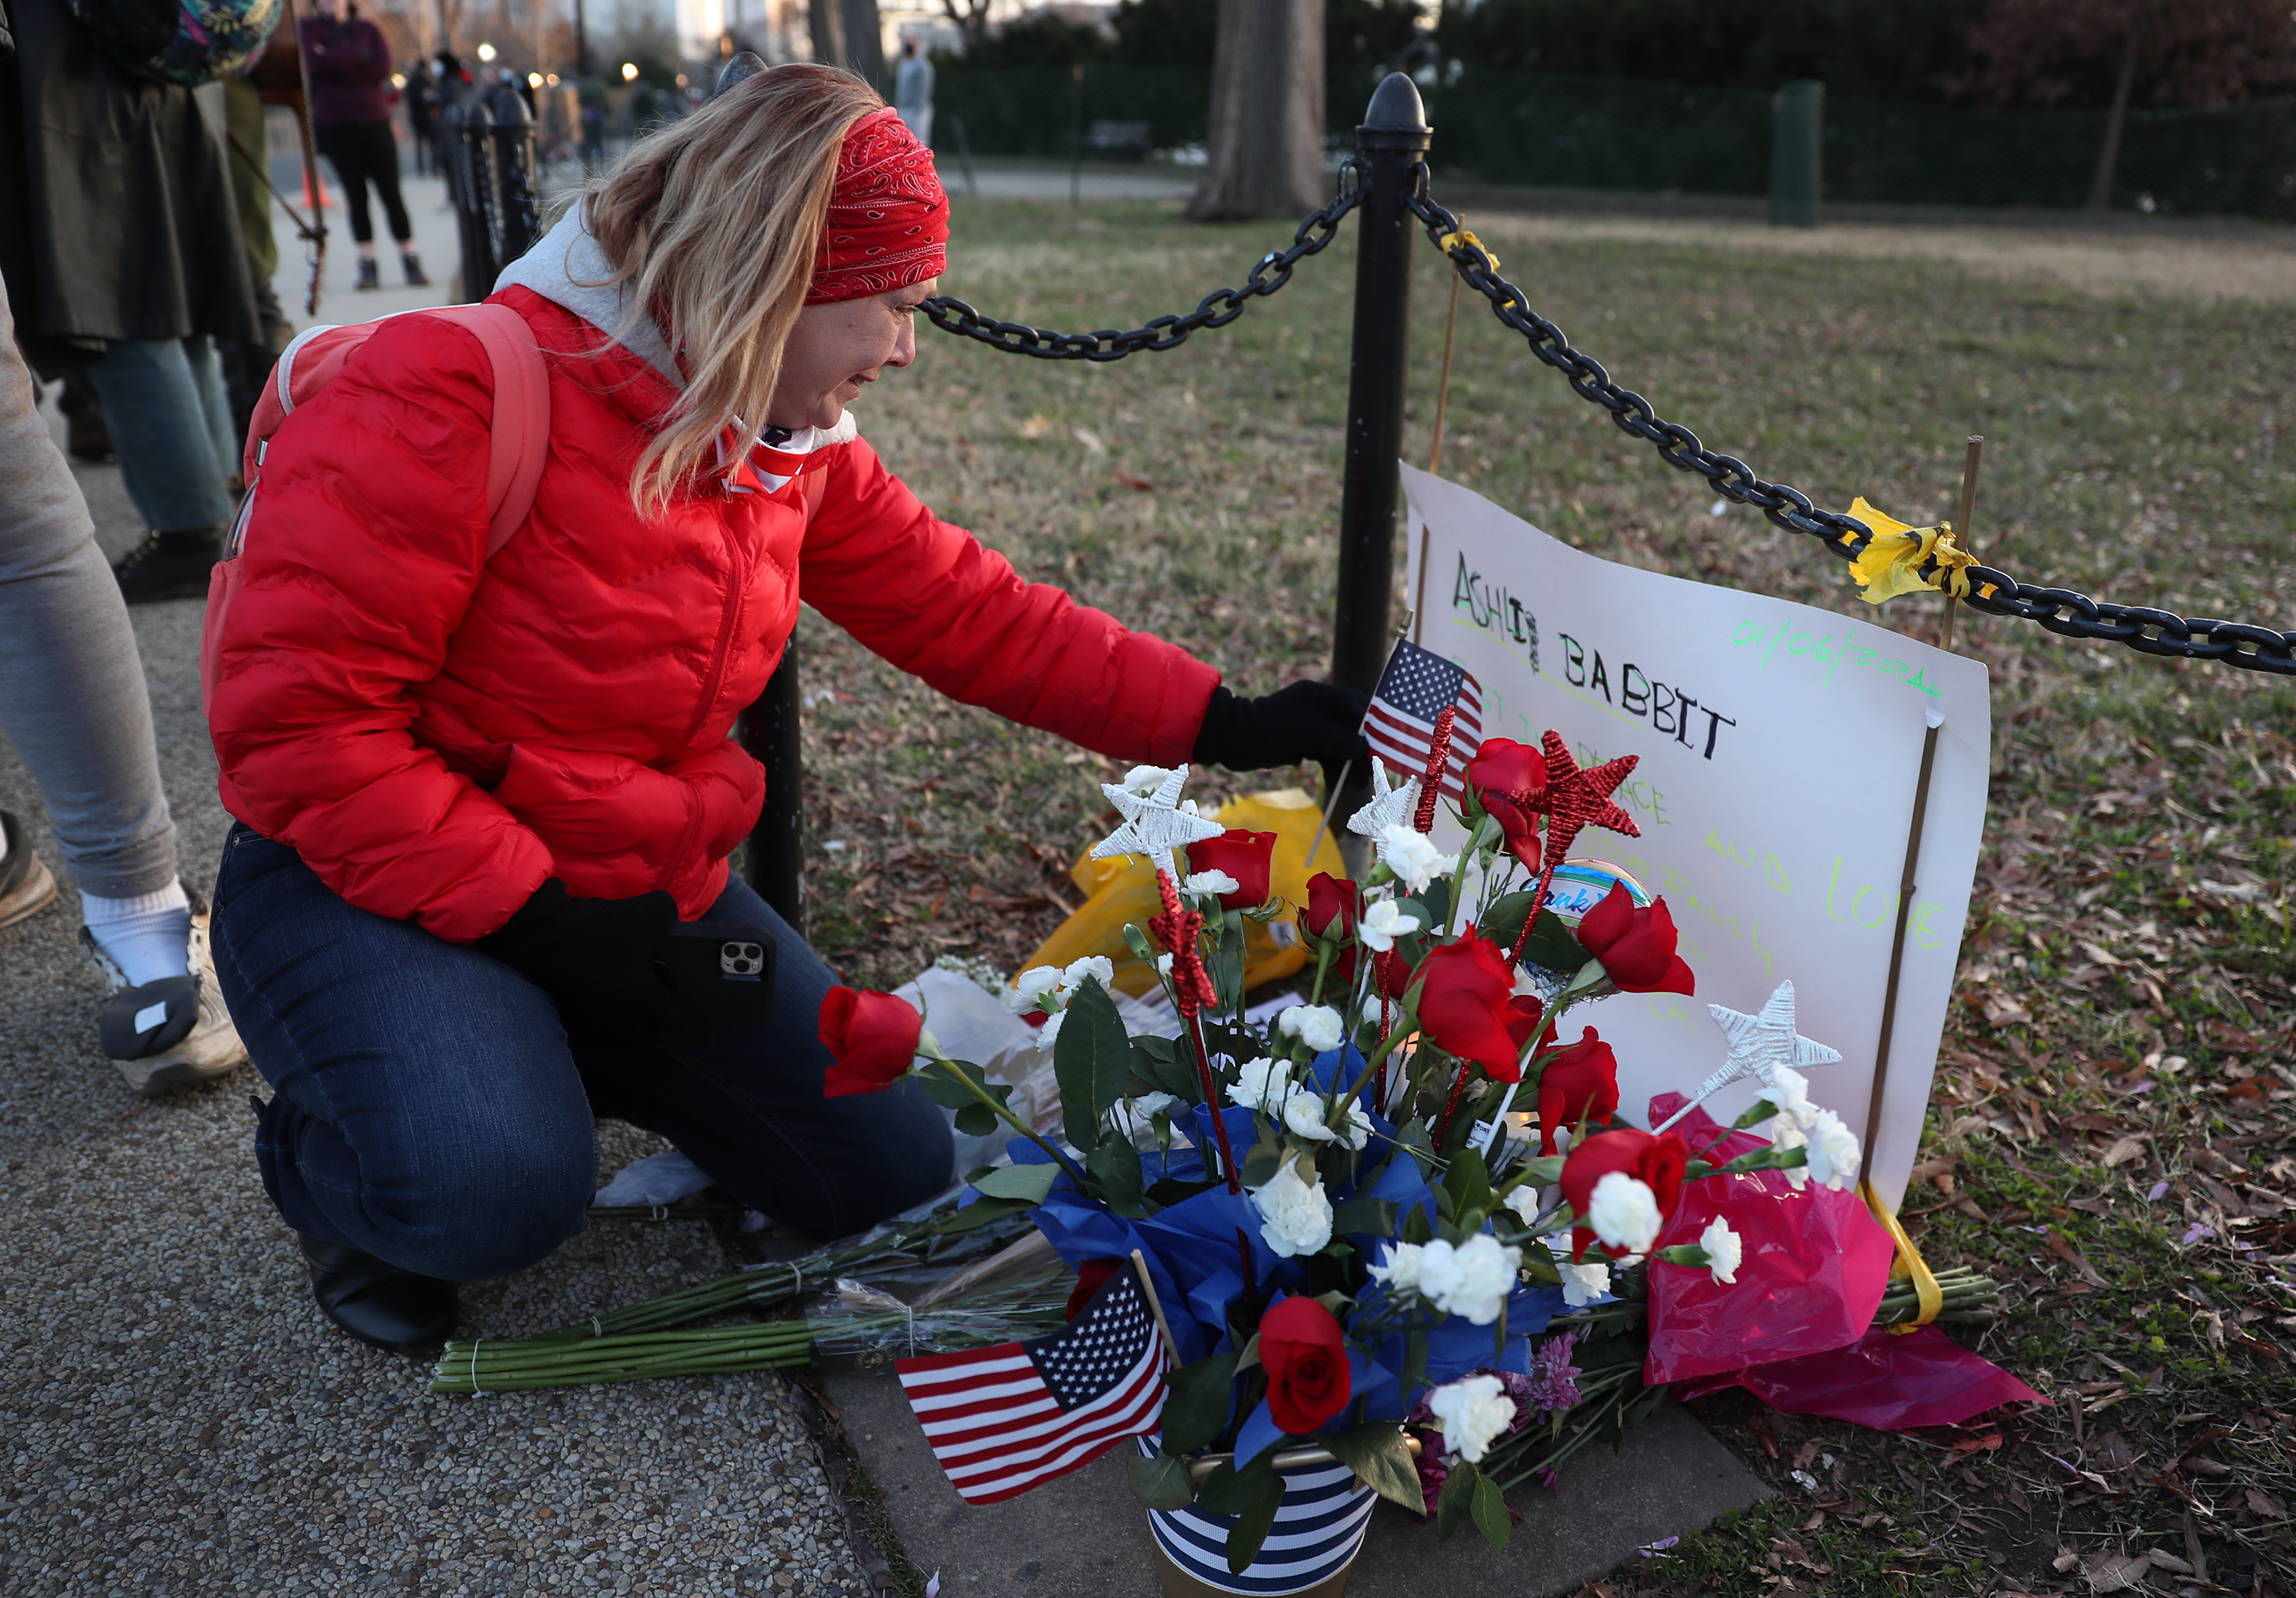 WASHINGTON, DC - JANUARY 07:  Melody Black, from Minnesota, becomes emotional as she visits a memorial setup near the U.S. Capitol Building for Ashli Babbitt who was killed in the building after a pro-Trump mob broke in on January 07, 2021 in Washington, DC. Congress finished tallying the Electoral College votes and Joe Biden was certified as the winner of the 2020 presidential election. (Photo by Joe Raedle/Getty Images)